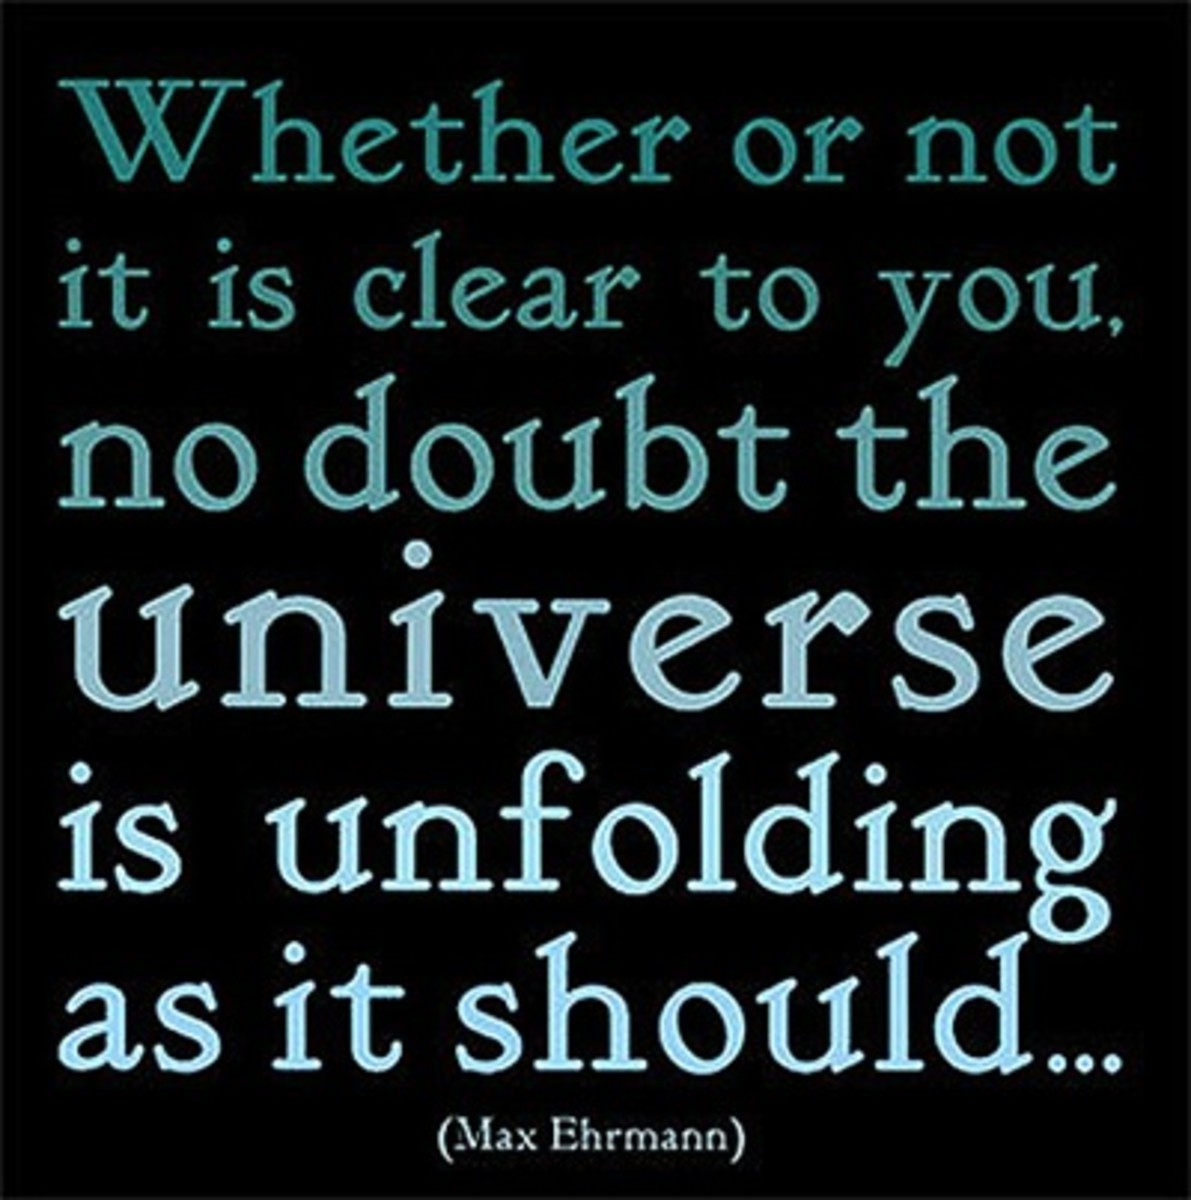 Could it be possible that the universe is not unfolding, but that human consciousness is?